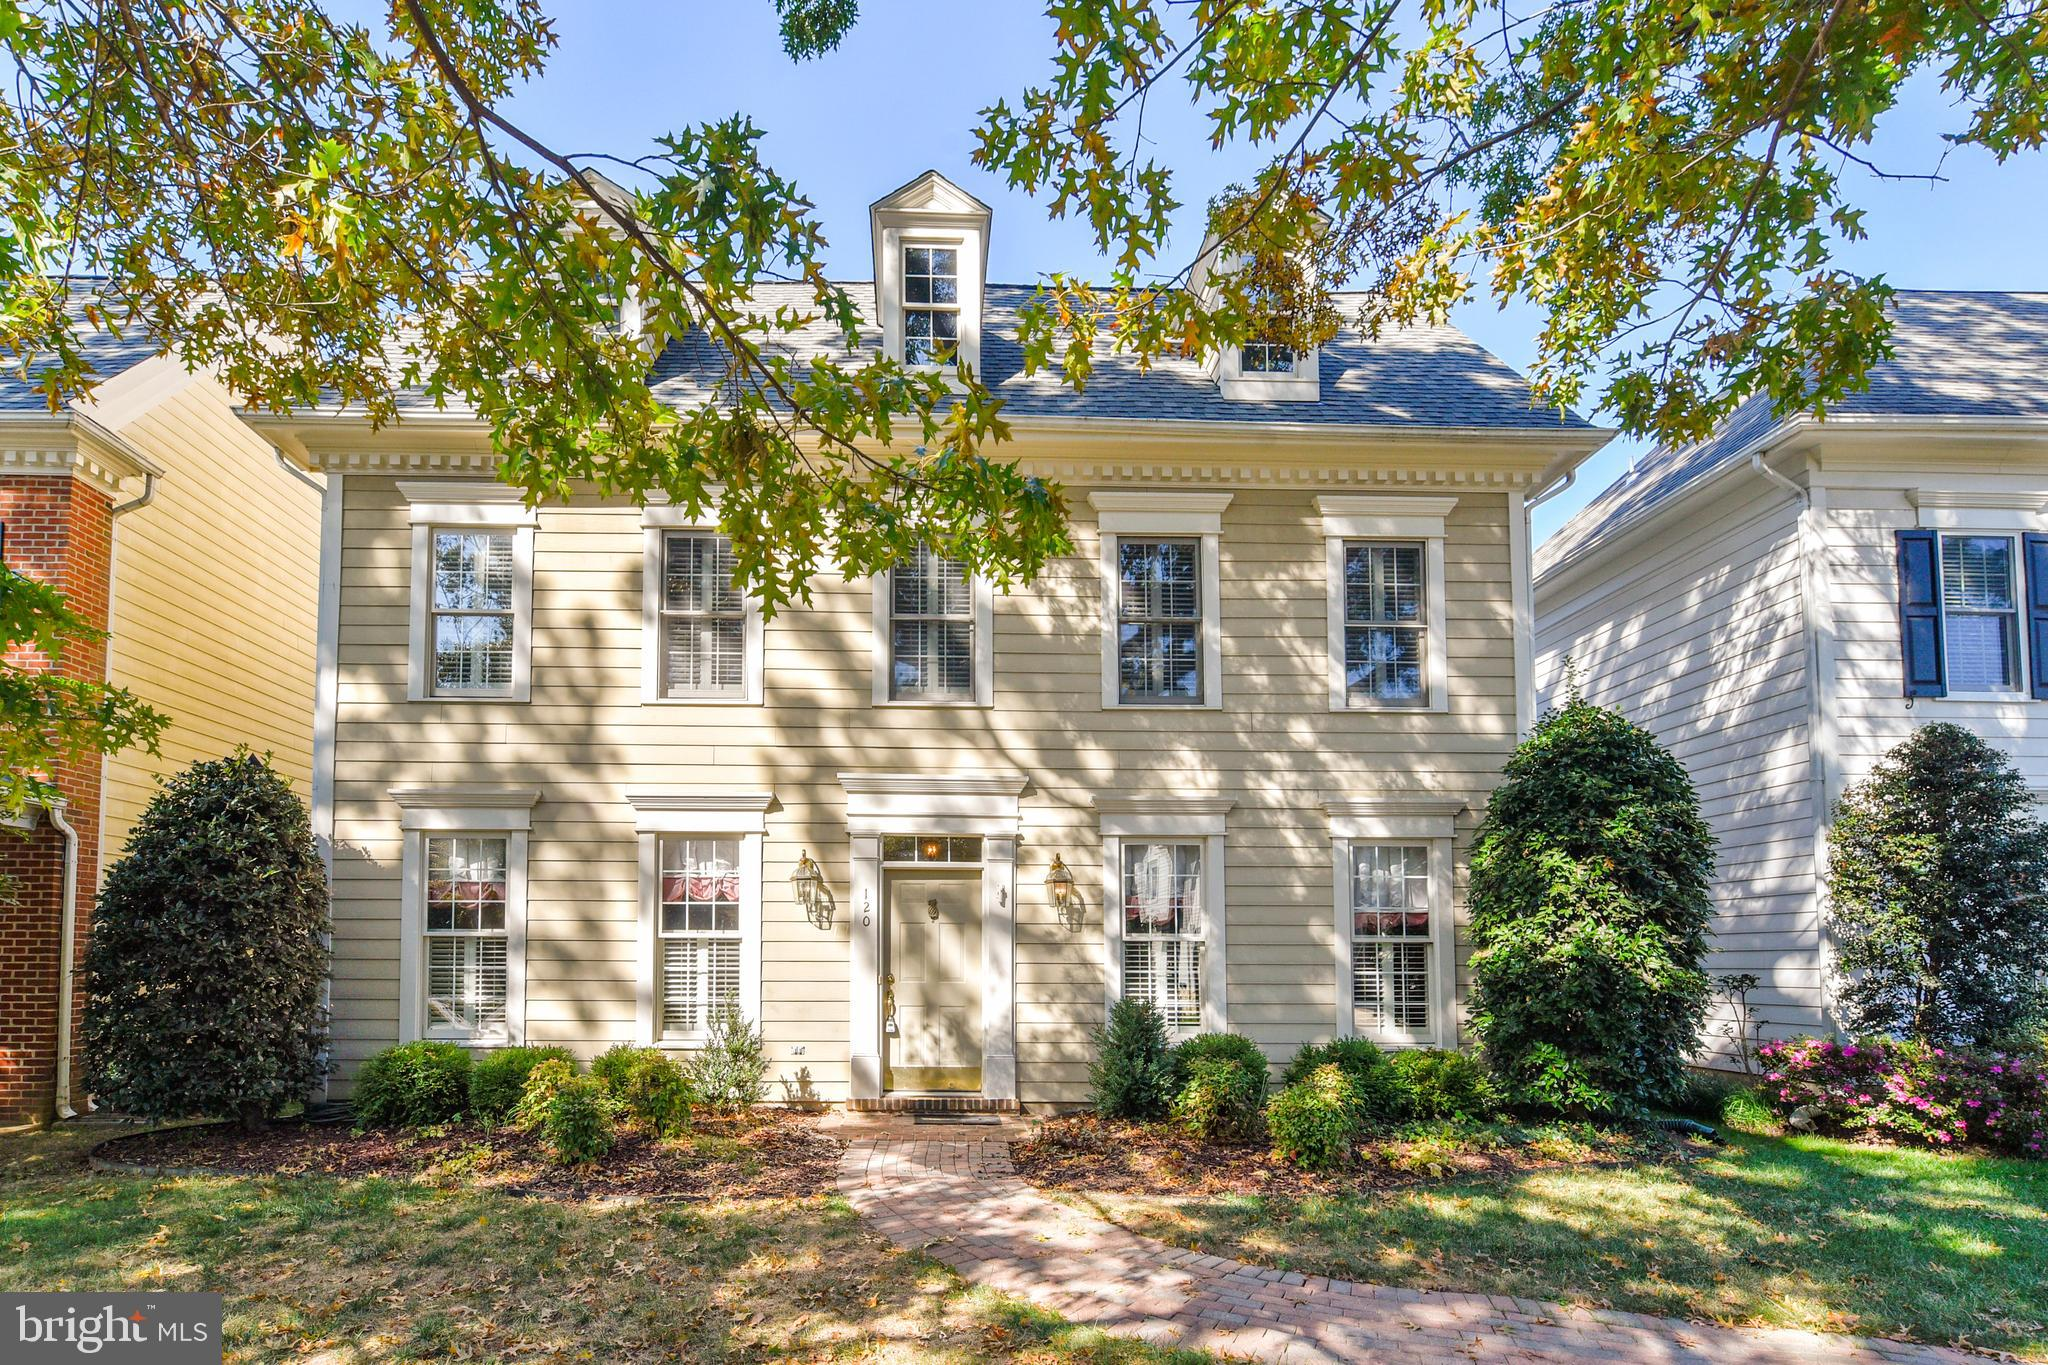 120 S CHERRY STREET, FALLS CHURCH, VA 22046